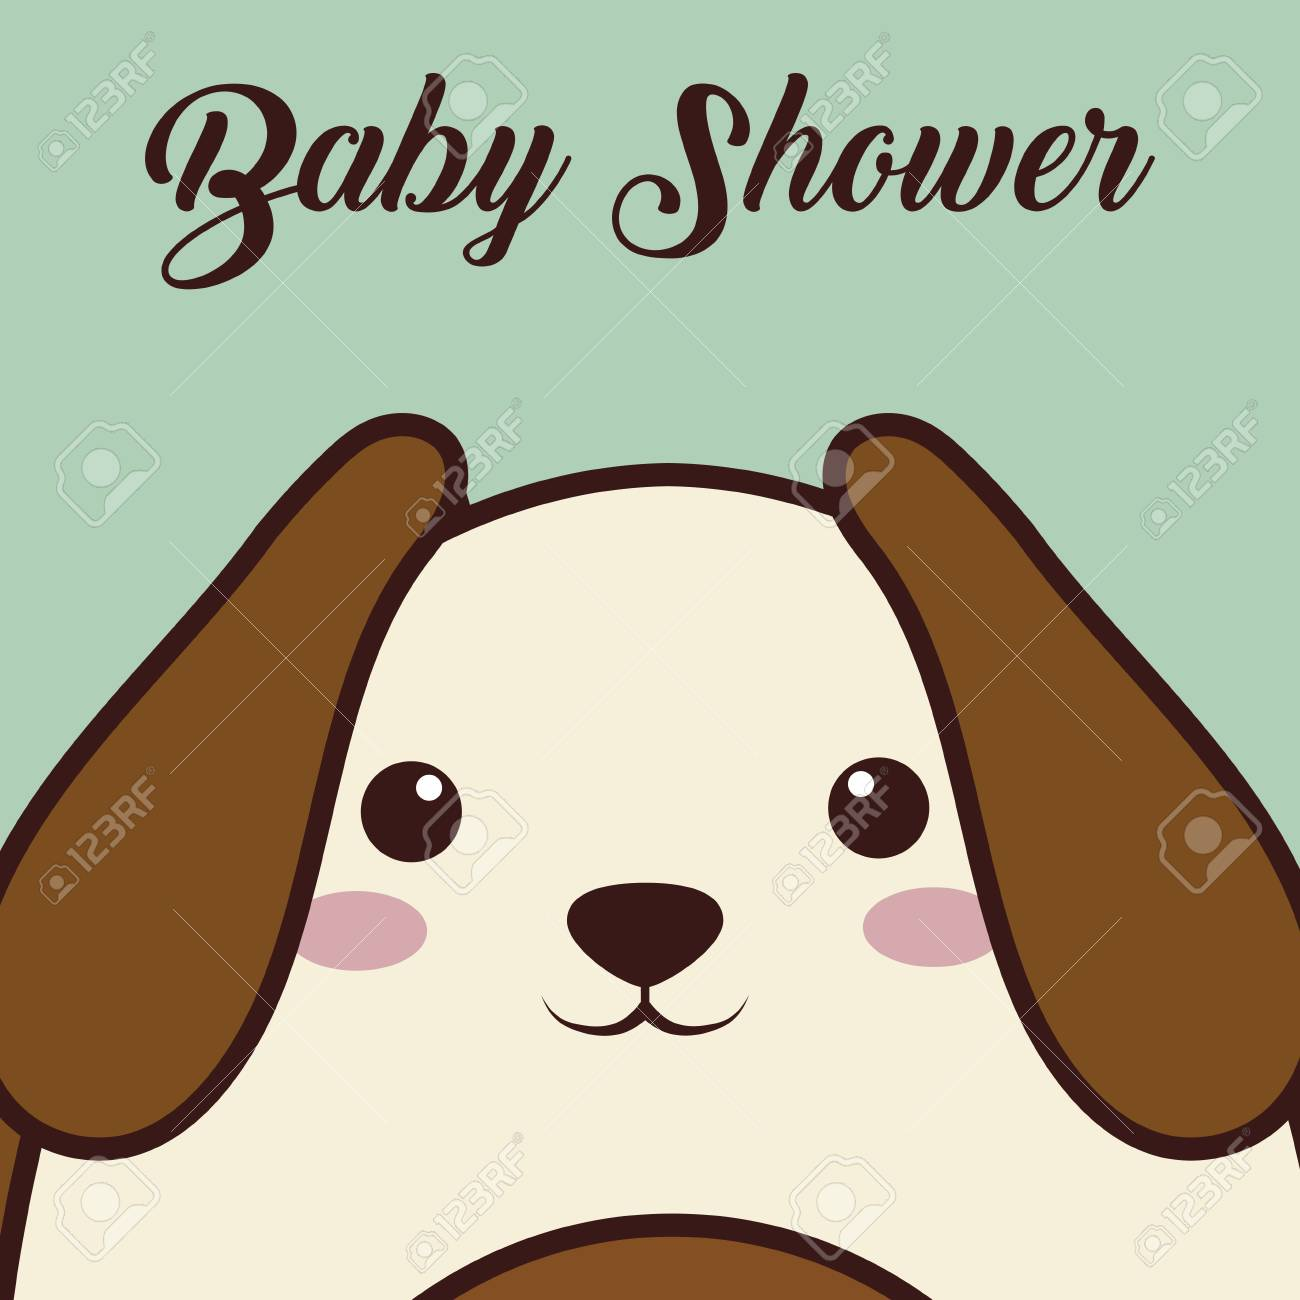 Decoracion De Baby Shower De Animales.Baby Shower Card With Dog Animal Icon Over Blue Background